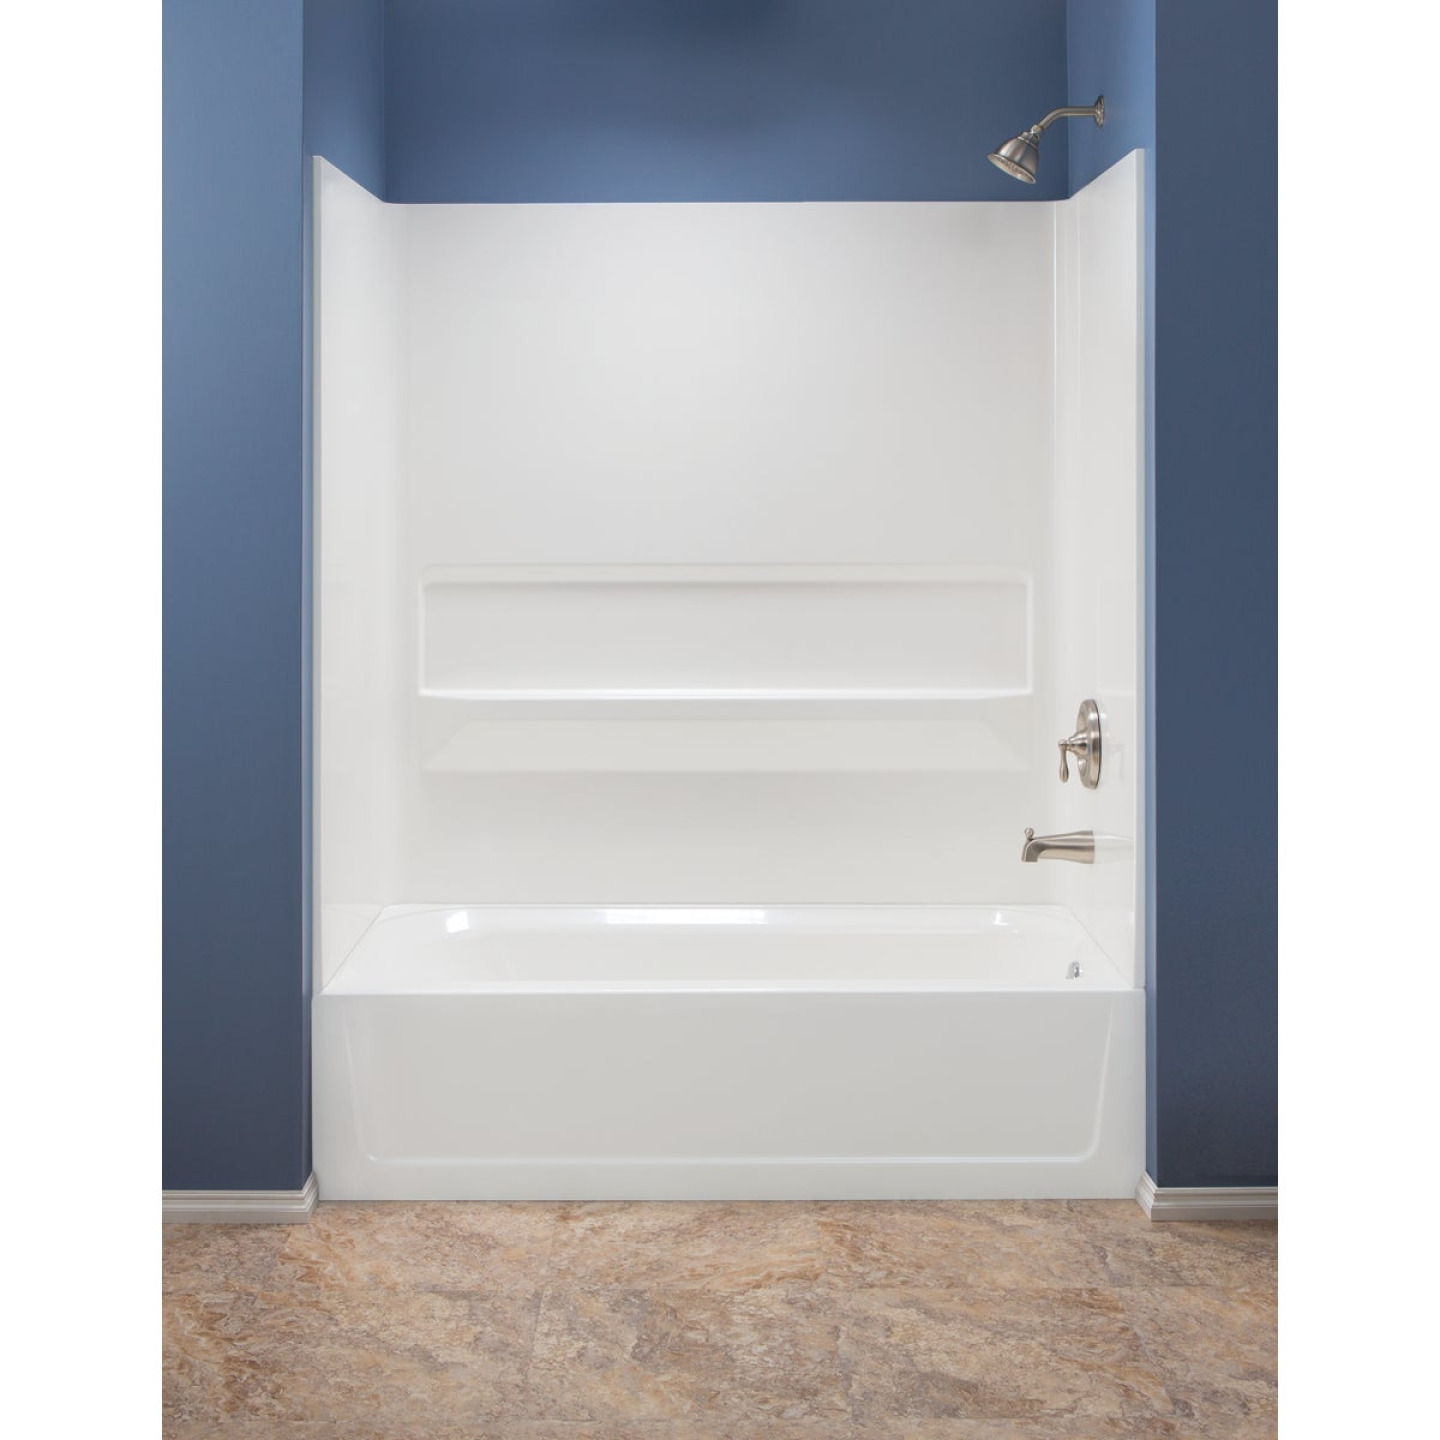 Mustee Topaz 3-Piece 60 In. L x 30 In. D (Bathtub) Tub Wall Kit in White Image 1